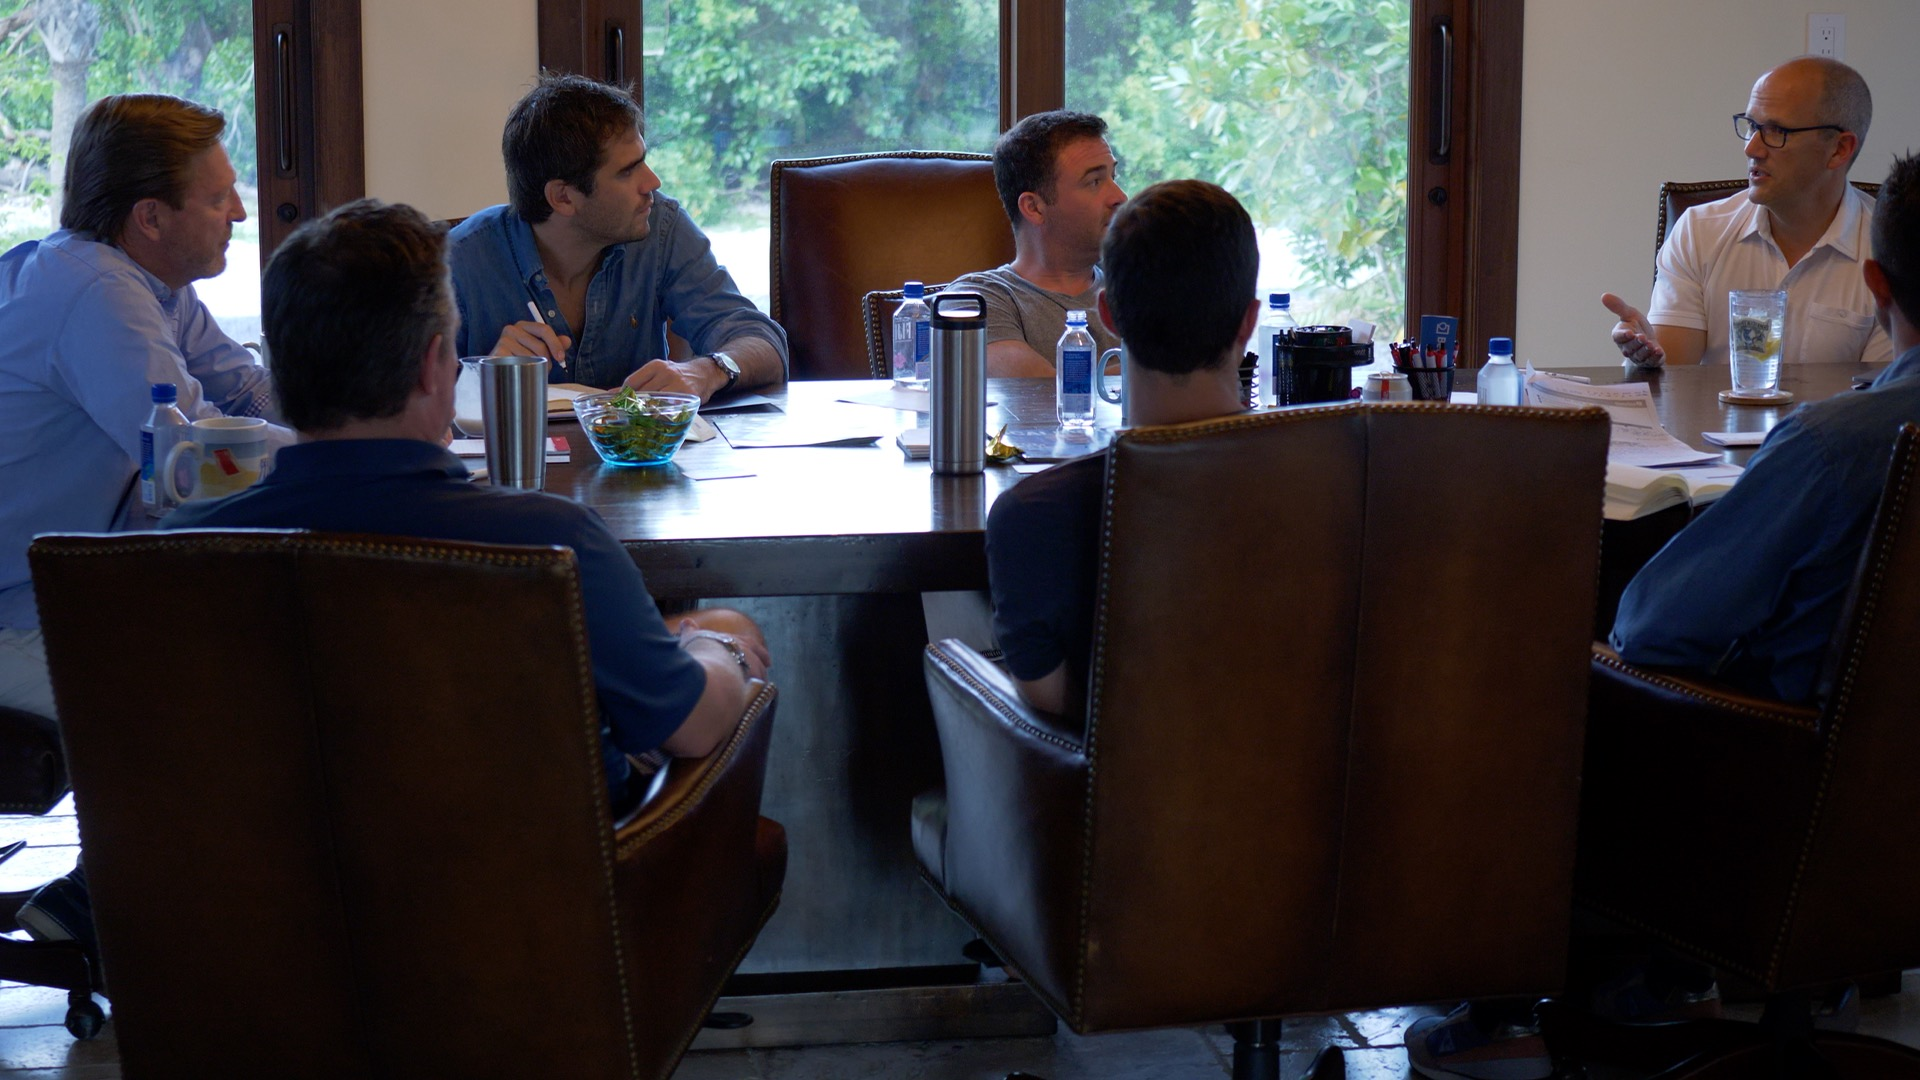 Photo of a Retreat in Marathon with CEOs having a meeting at a conference table